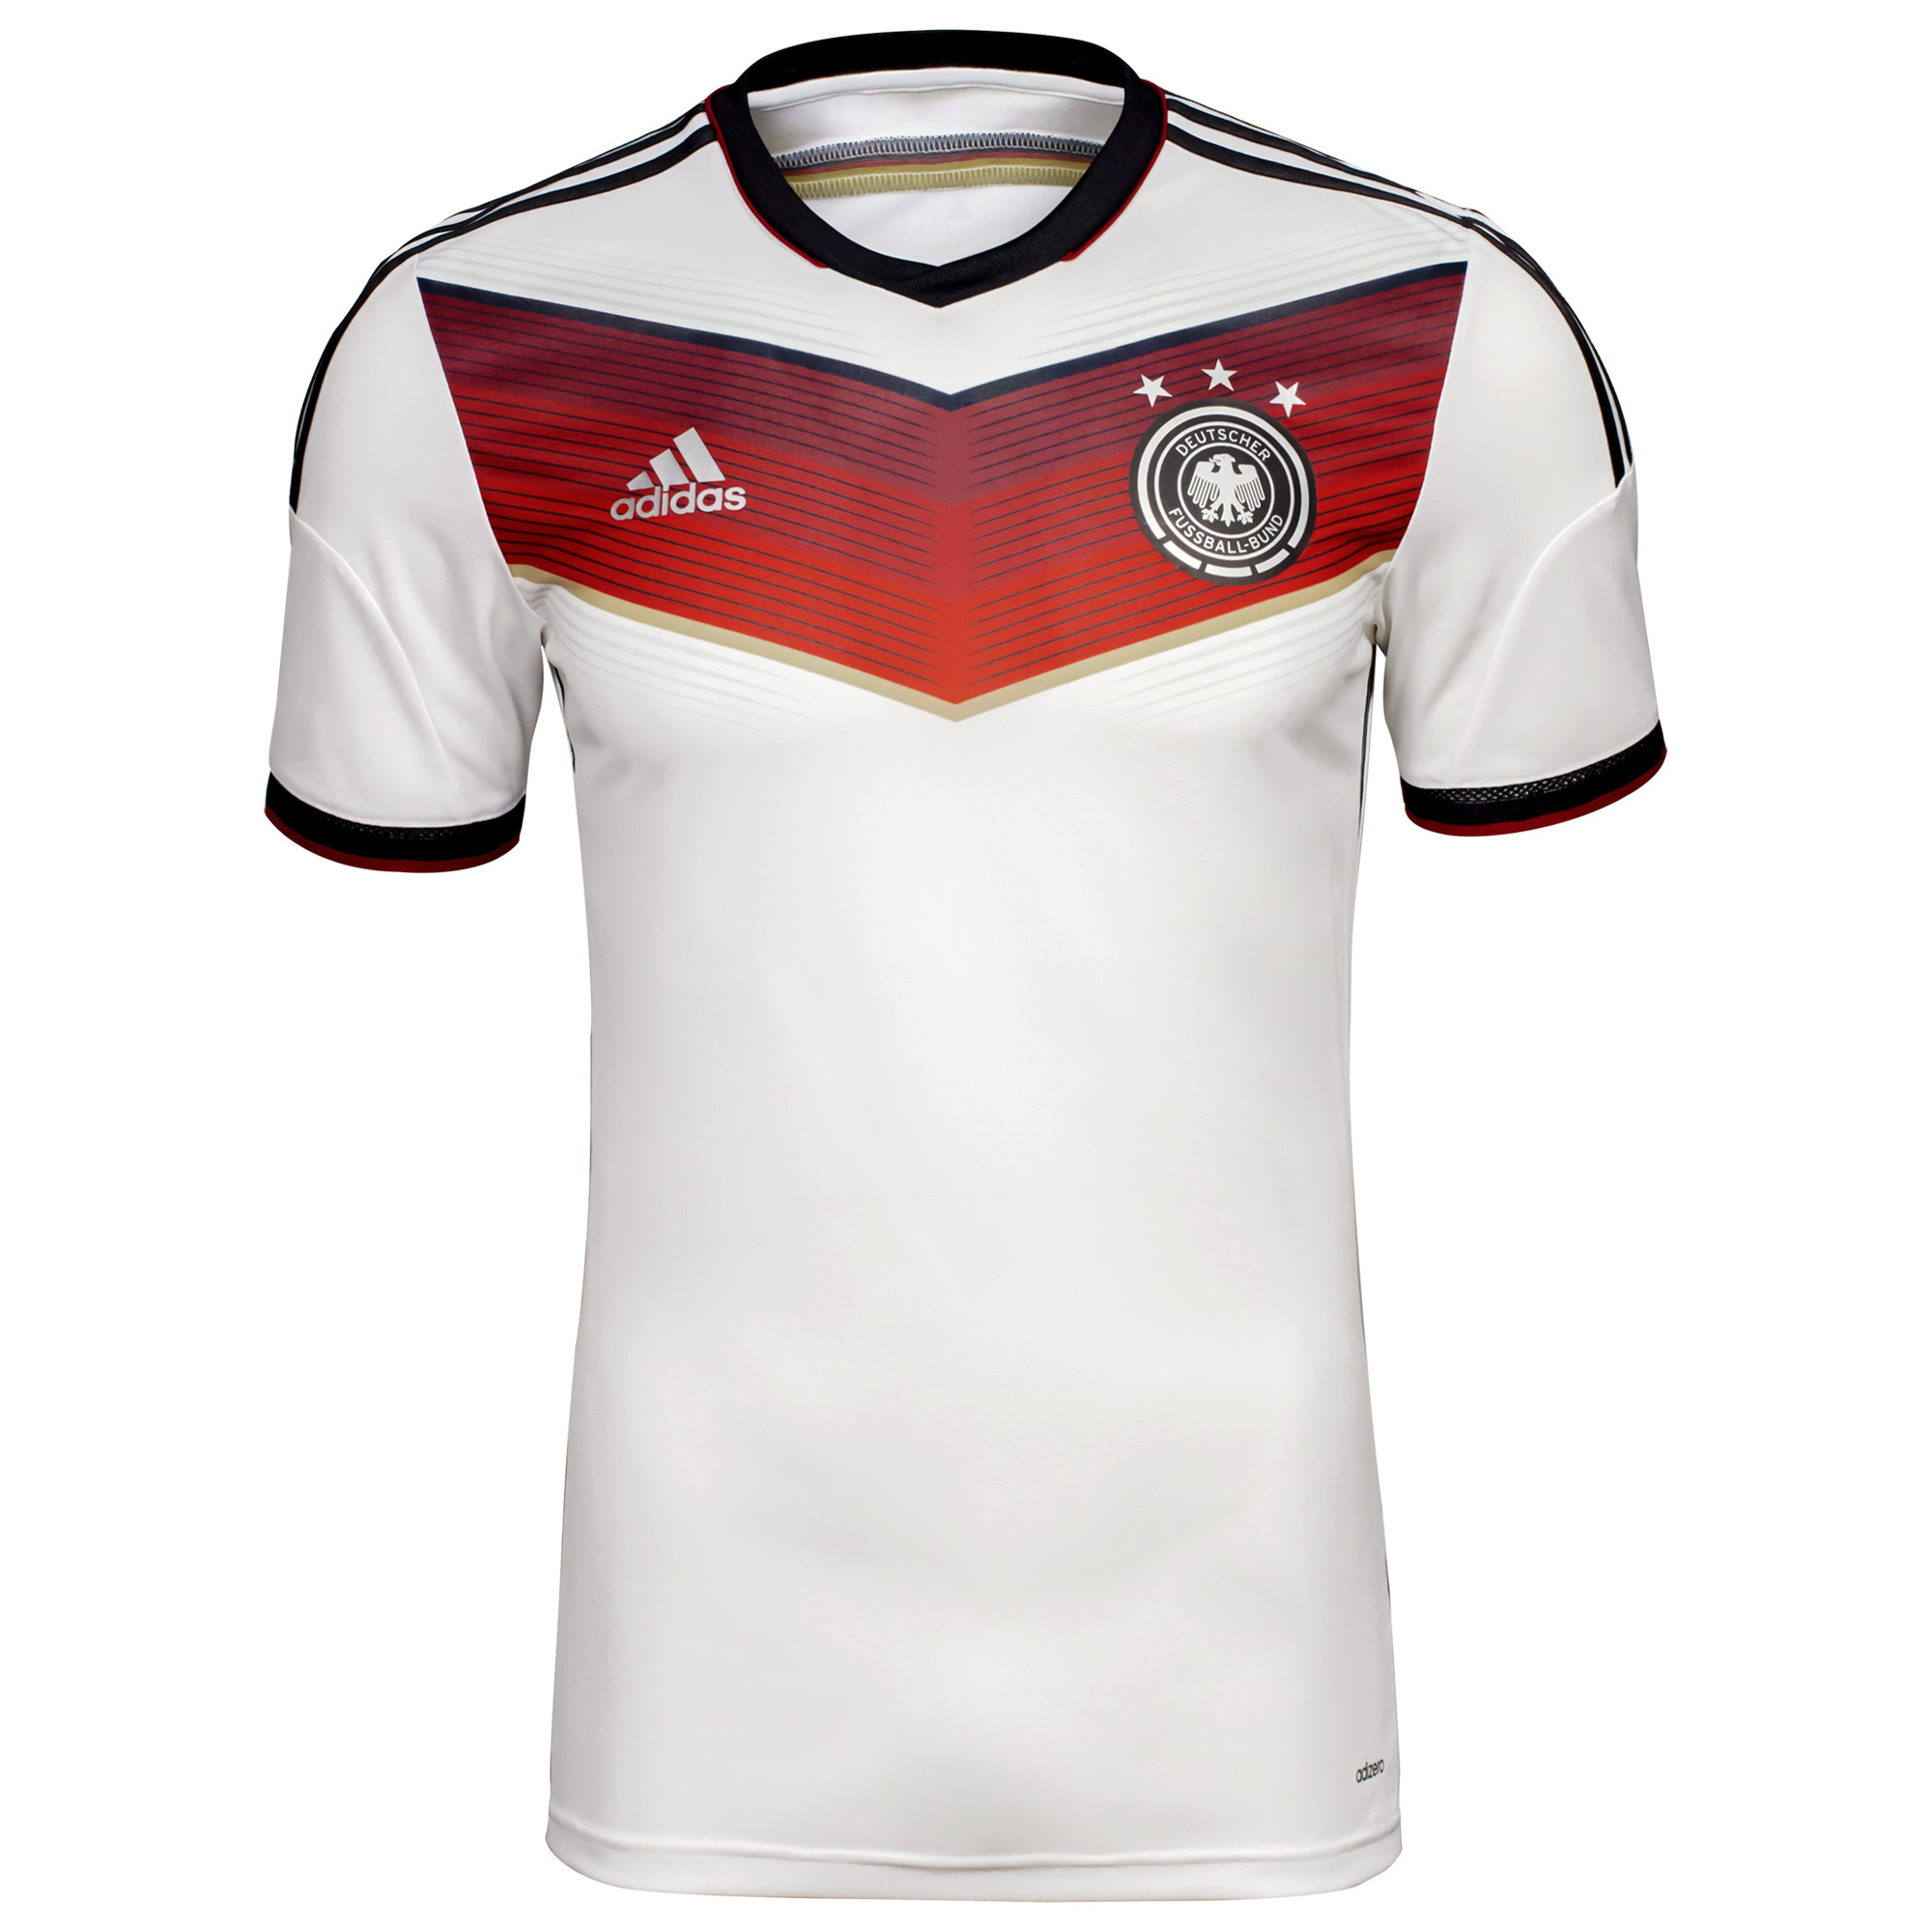 adidas deutschland trikot wm 2014 dfb home climacool. Black Bedroom Furniture Sets. Home Design Ideas